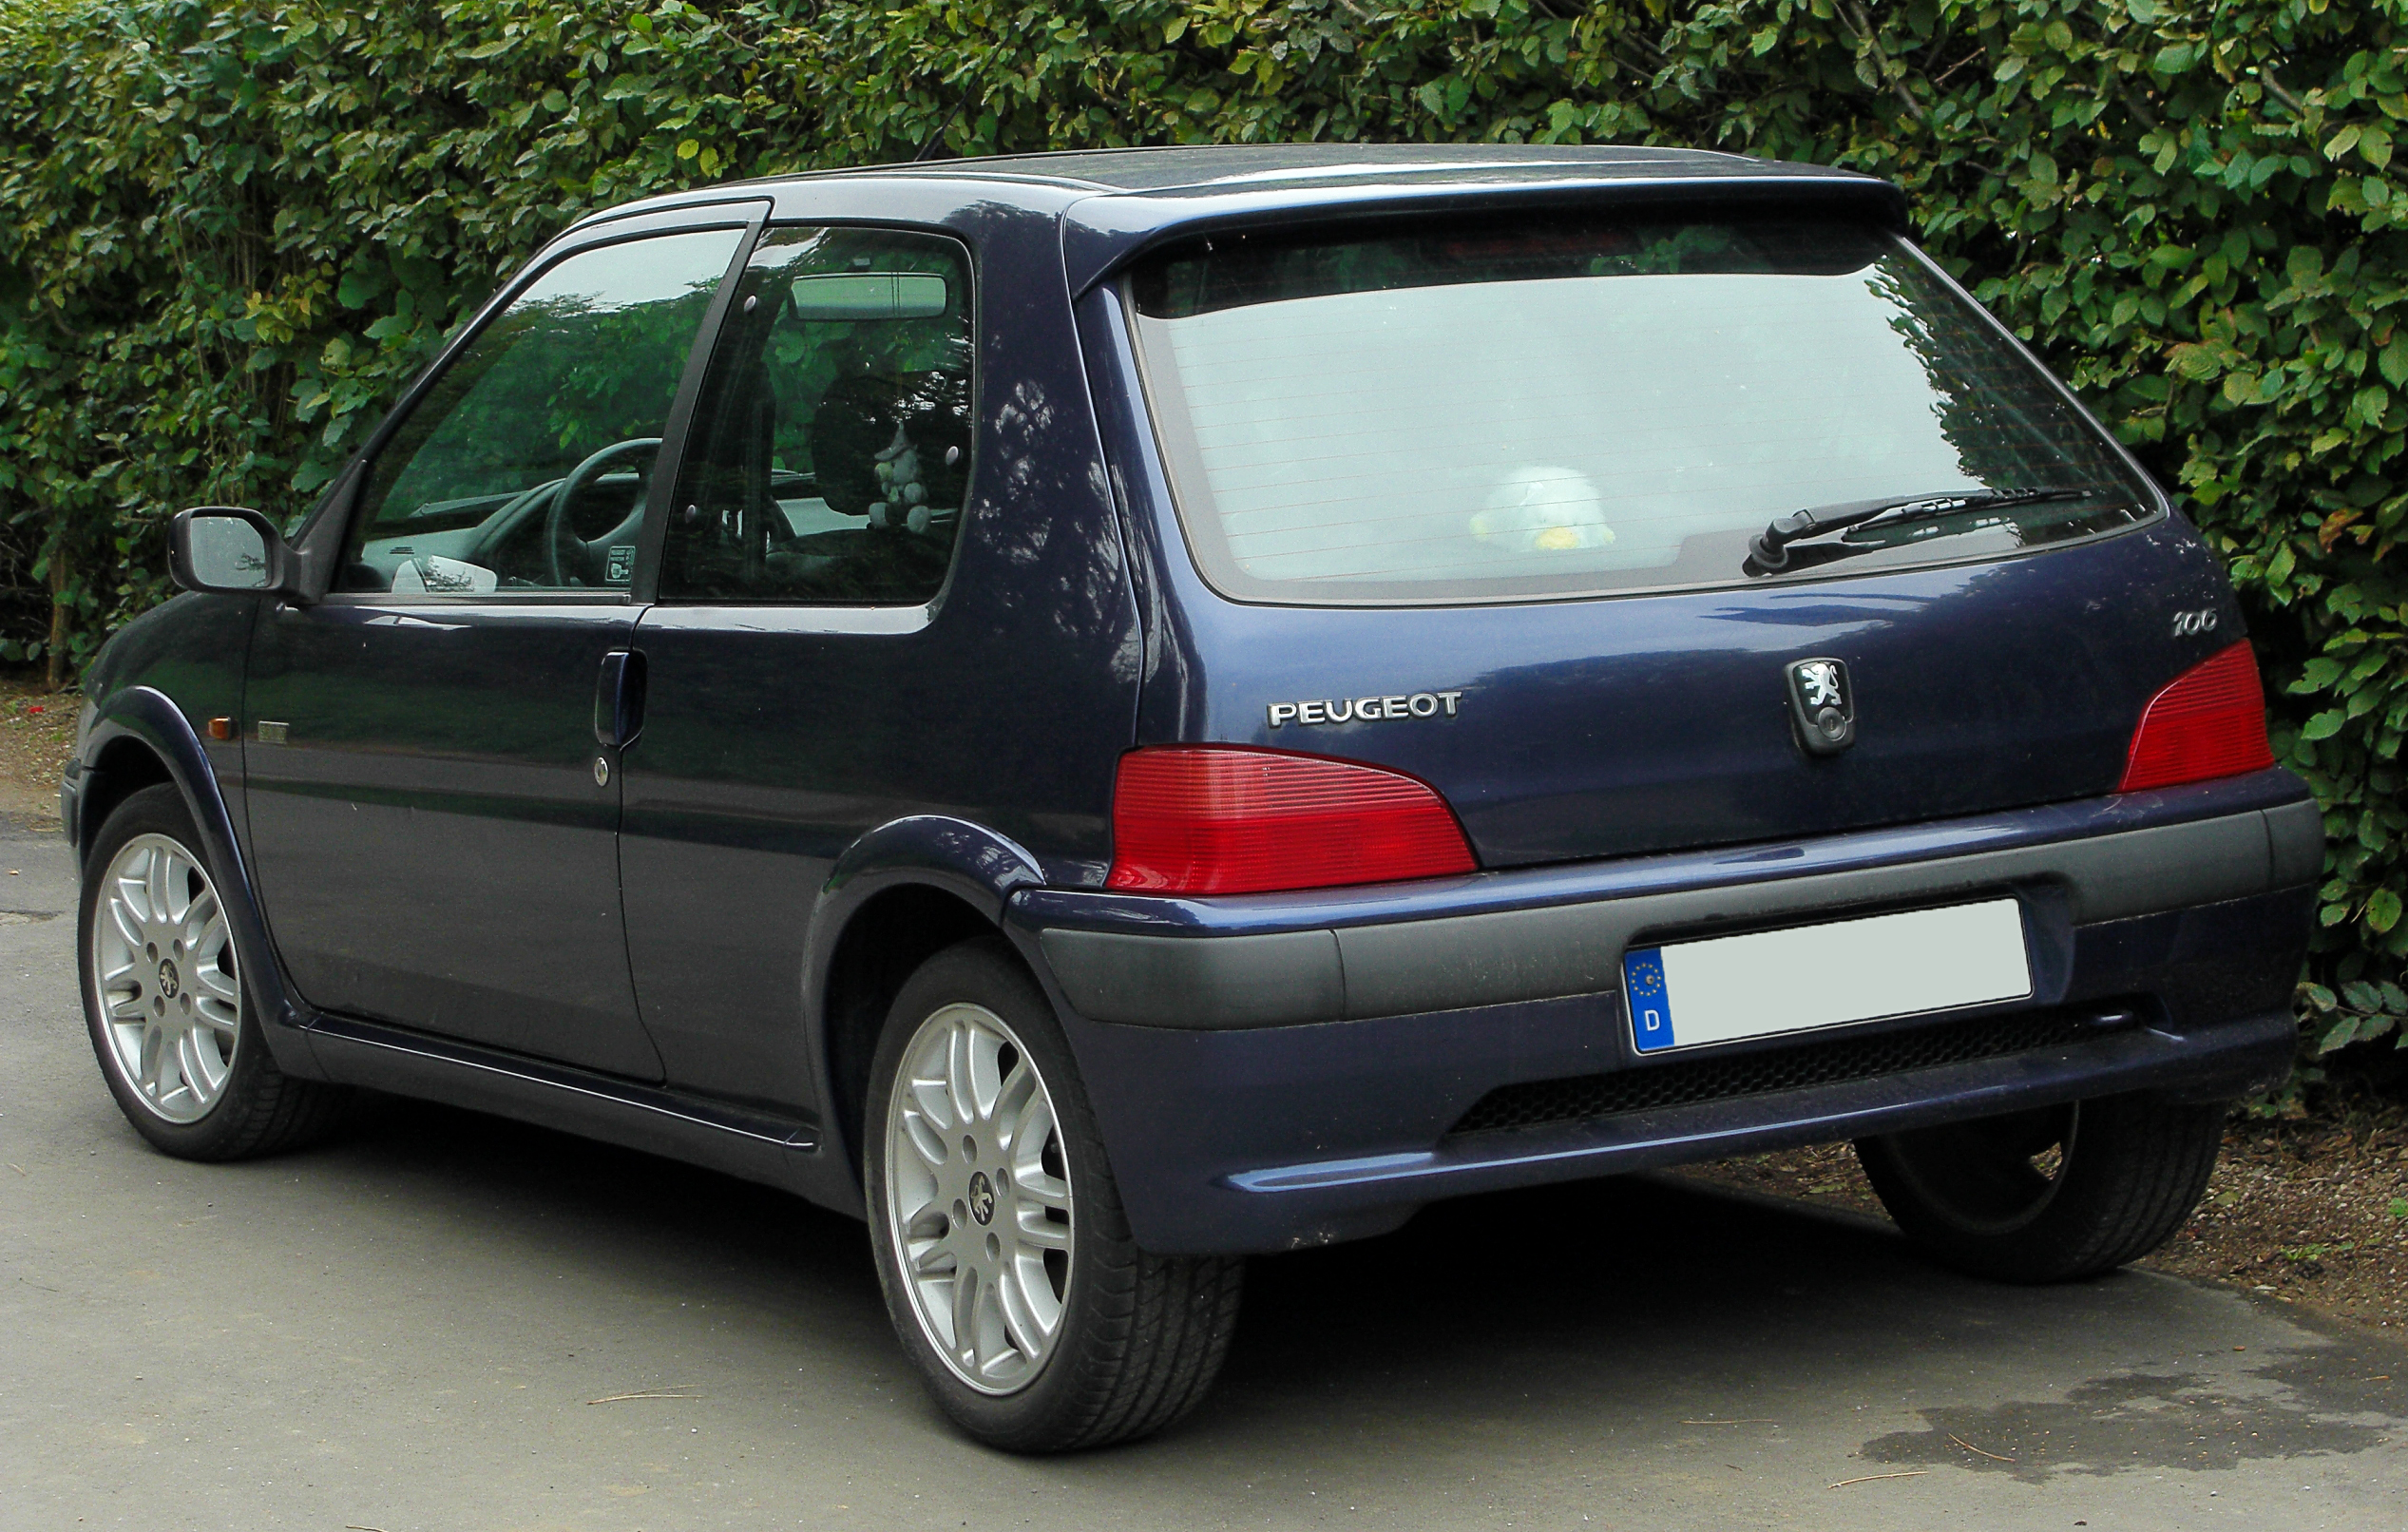 file peugeot 106 sport facelift rear. Black Bedroom Furniture Sets. Home Design Ideas